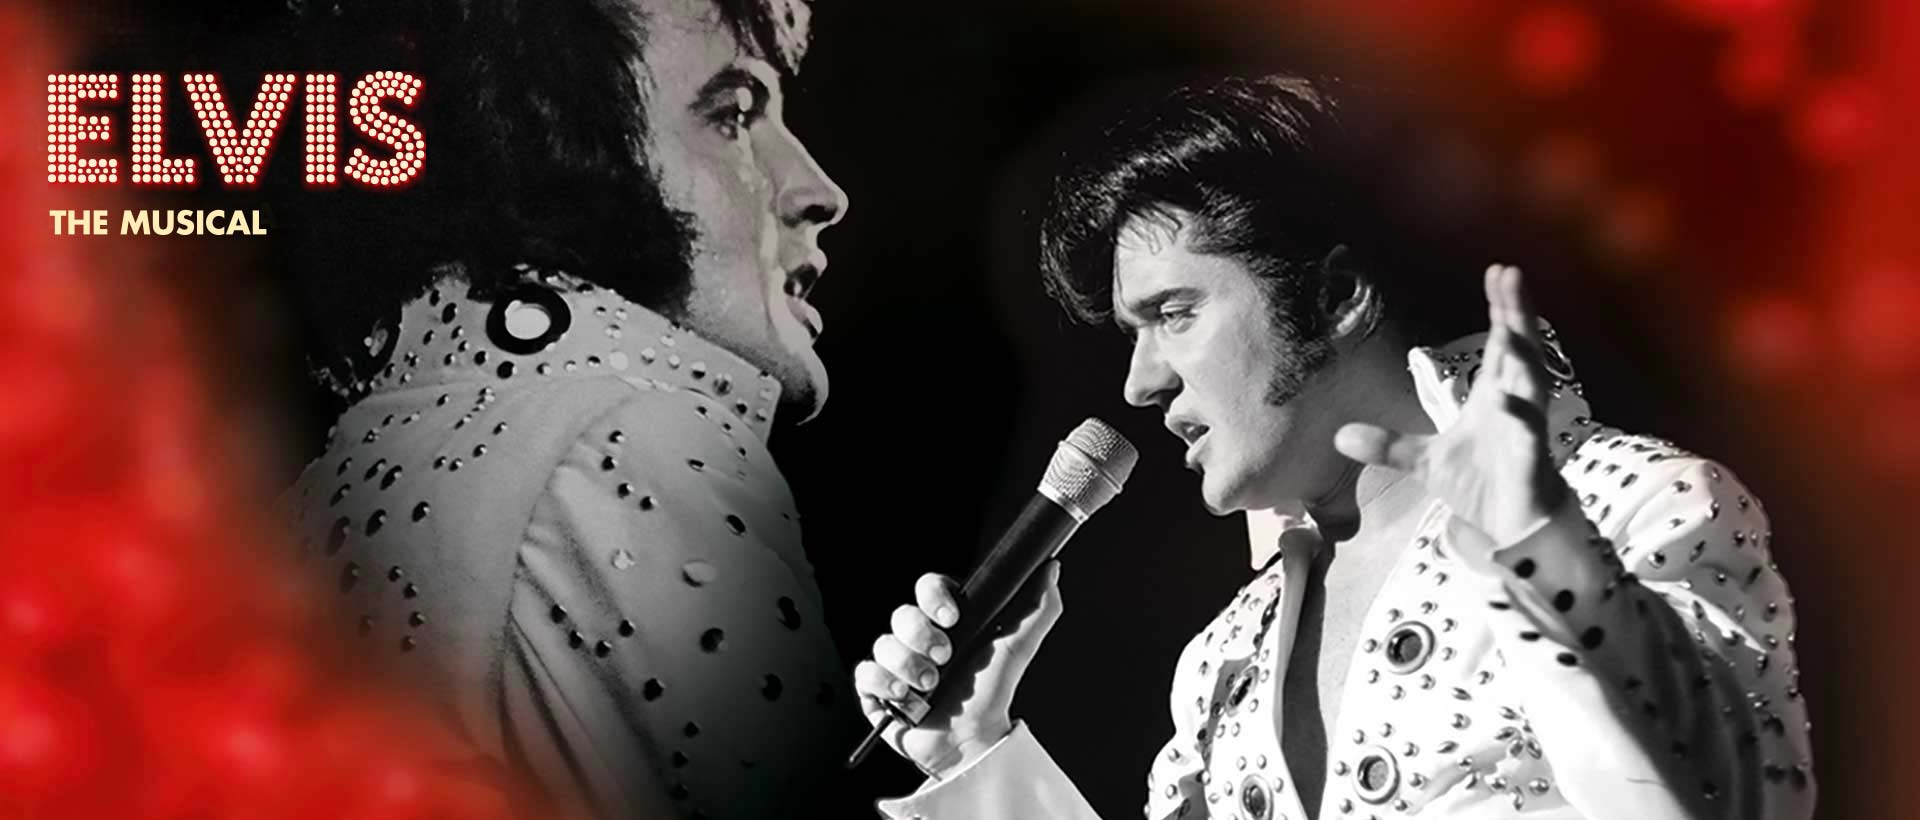 Elvis - The Musical 08/12/ - 09/13/2020